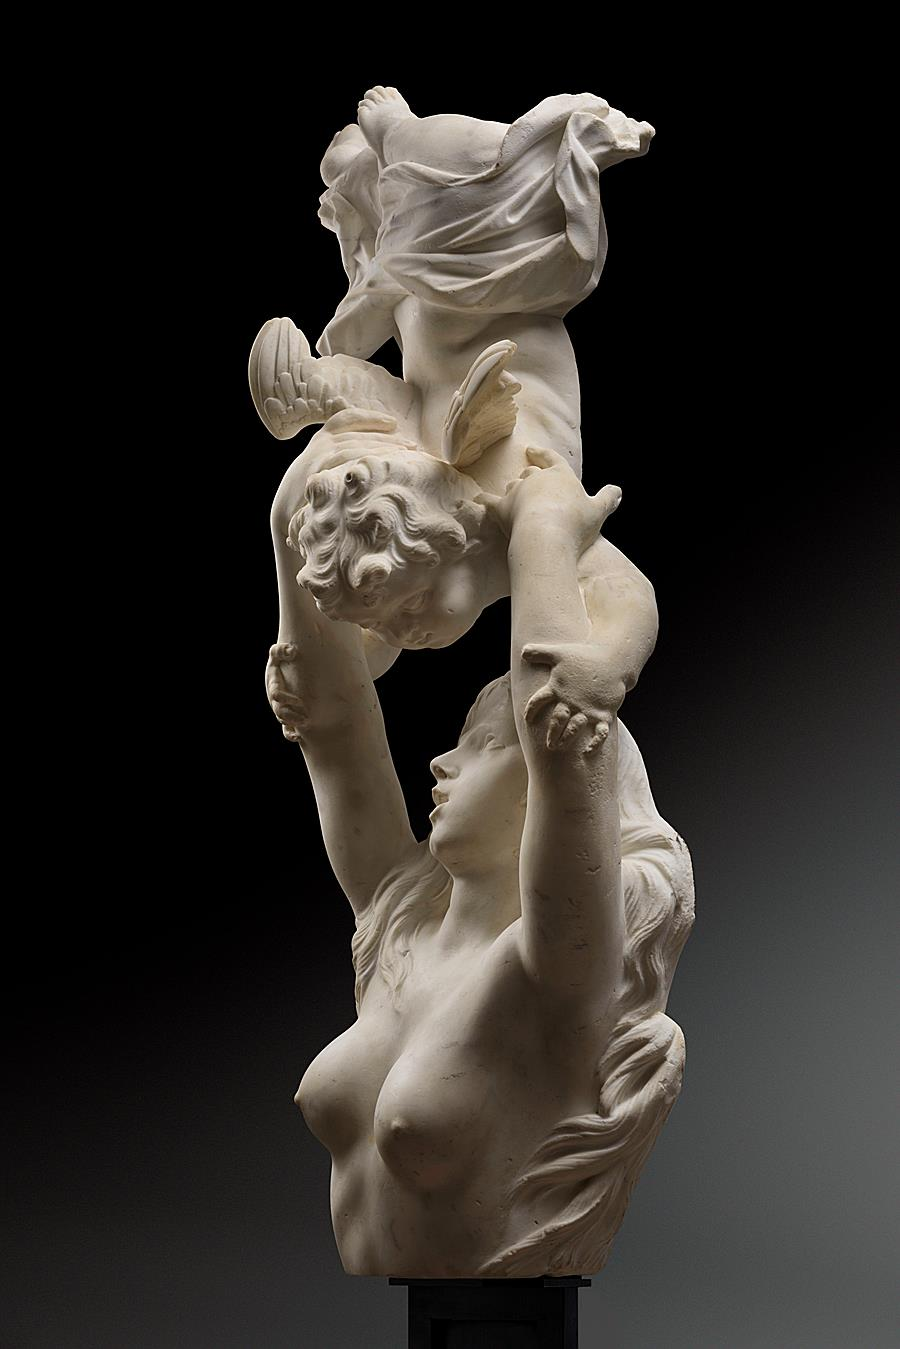 SPECTACULAR BAROQUE GROUP OF A NAIAD AND  PUTTO FLANDERS END OF THE 17TH CENTURY